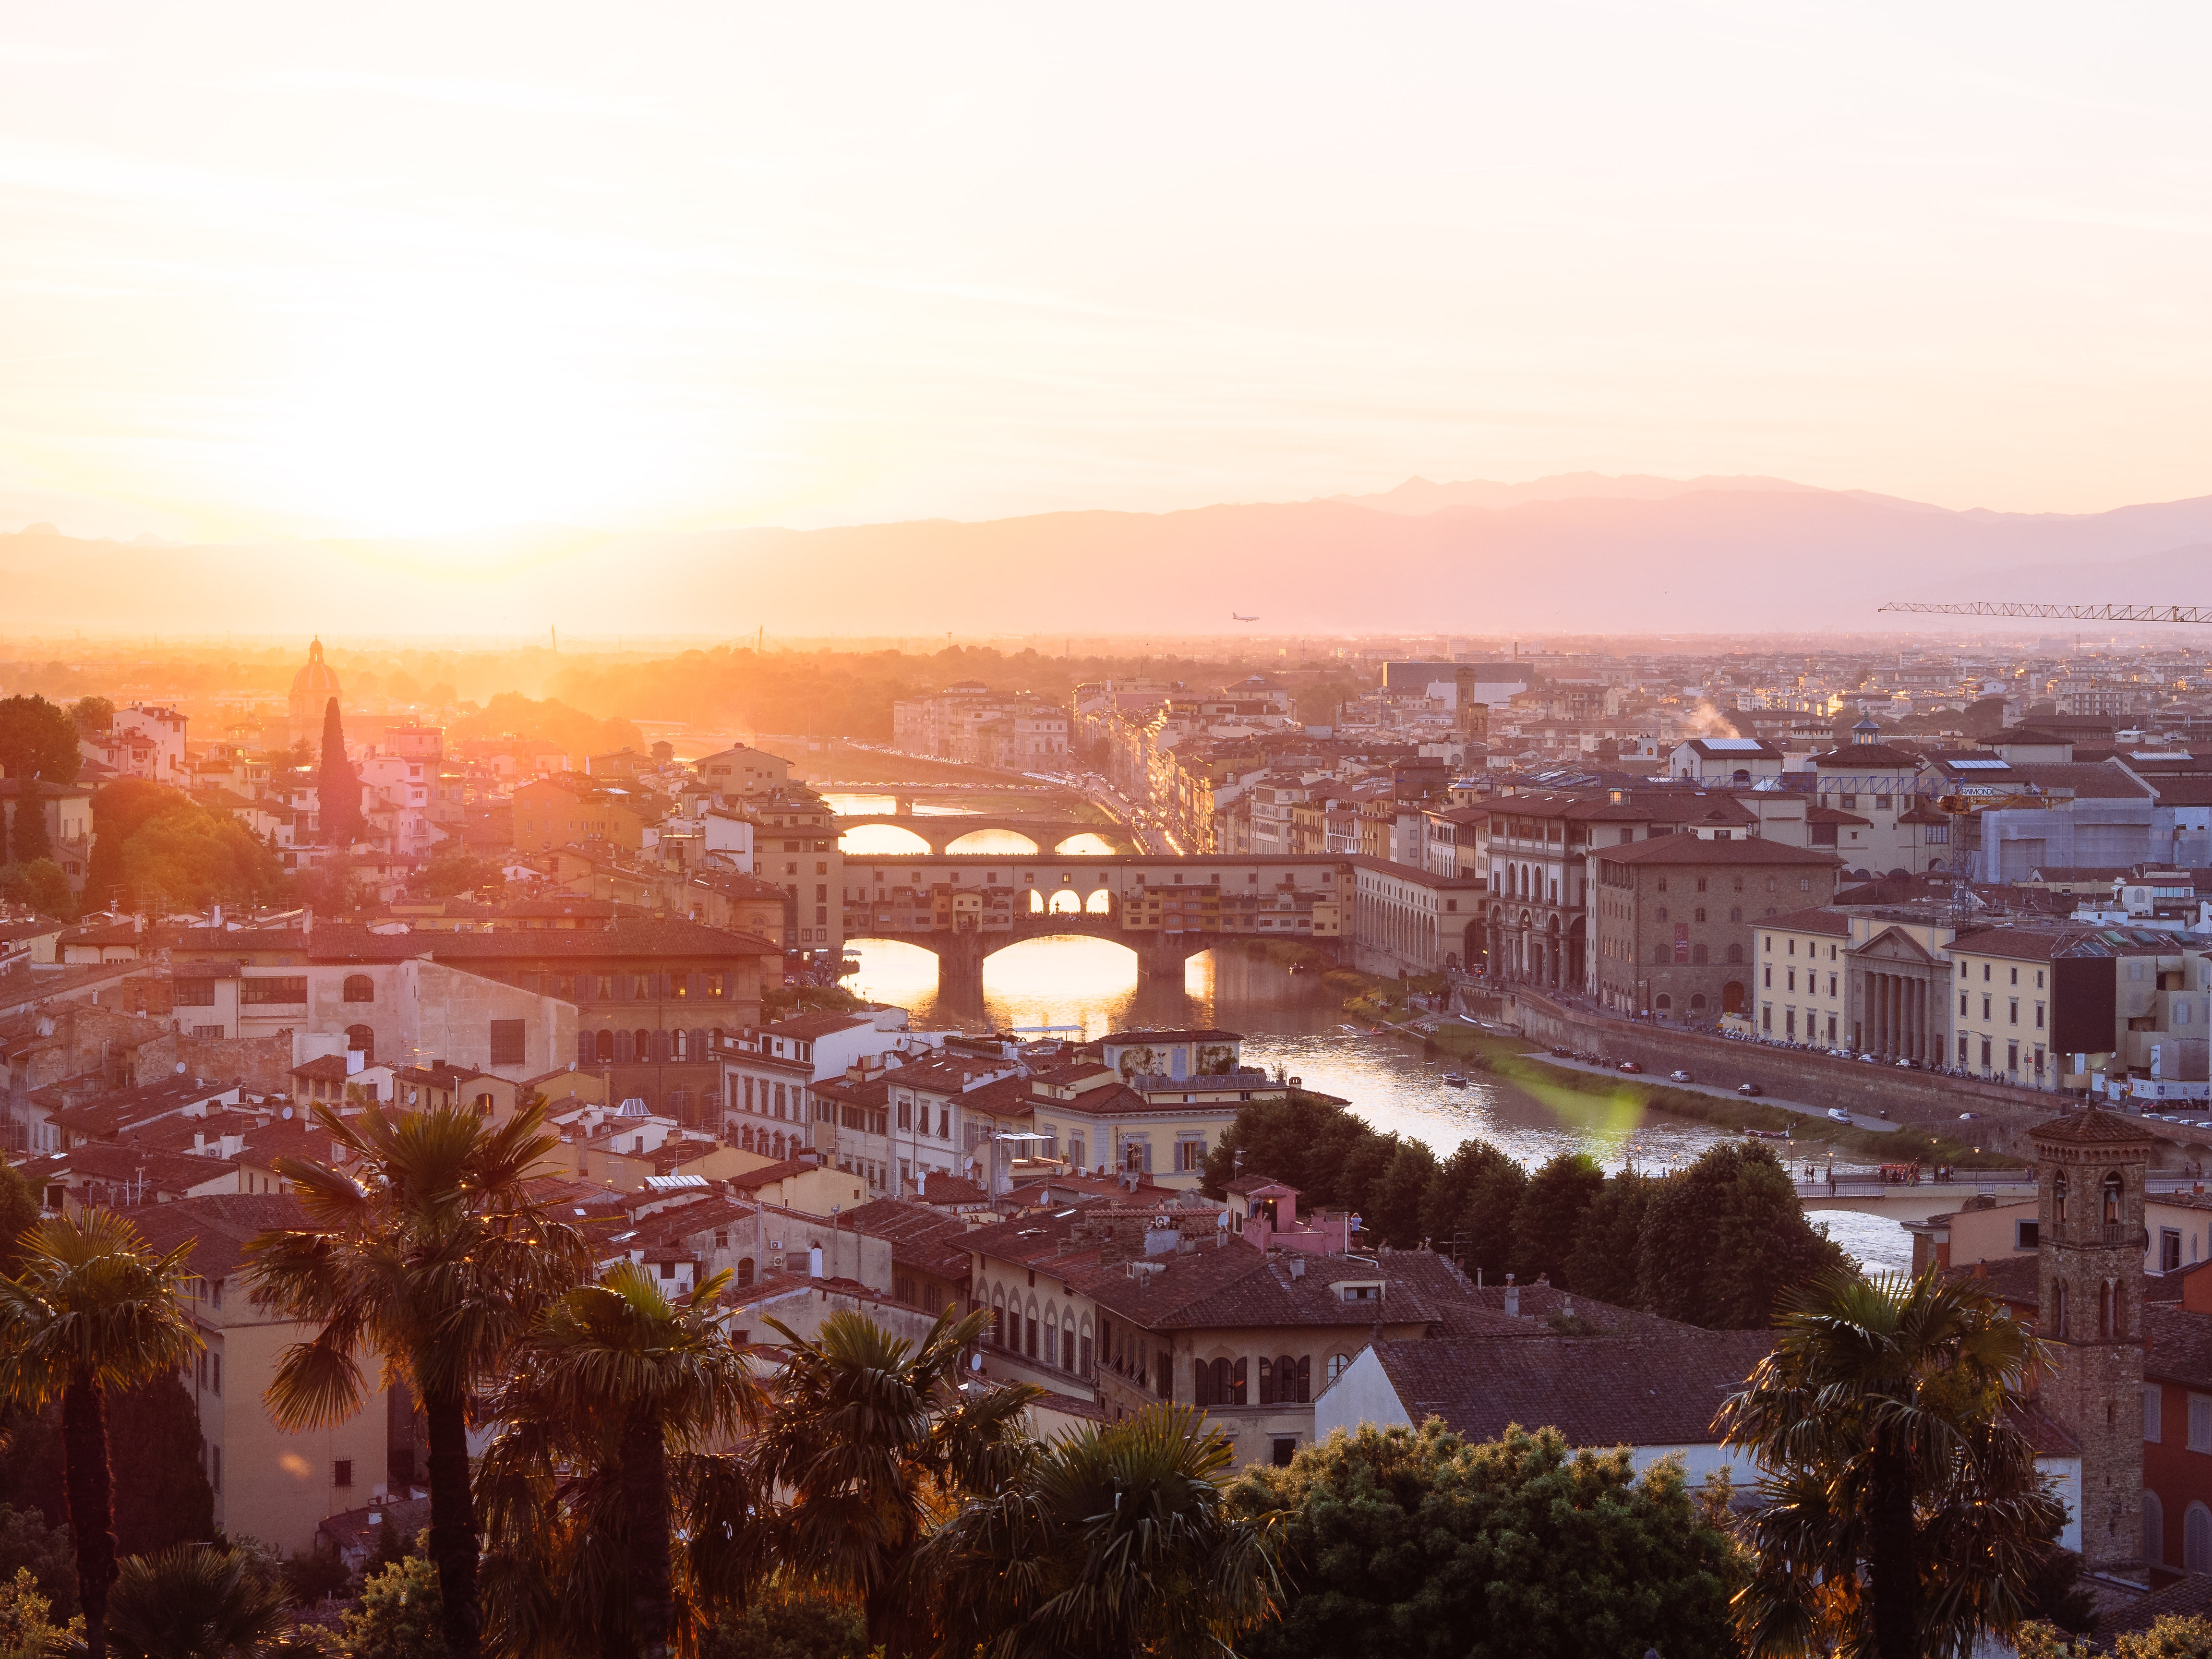 The sun sets over the bridges of the River Arno in the city of Florence, Tuscany, Italy